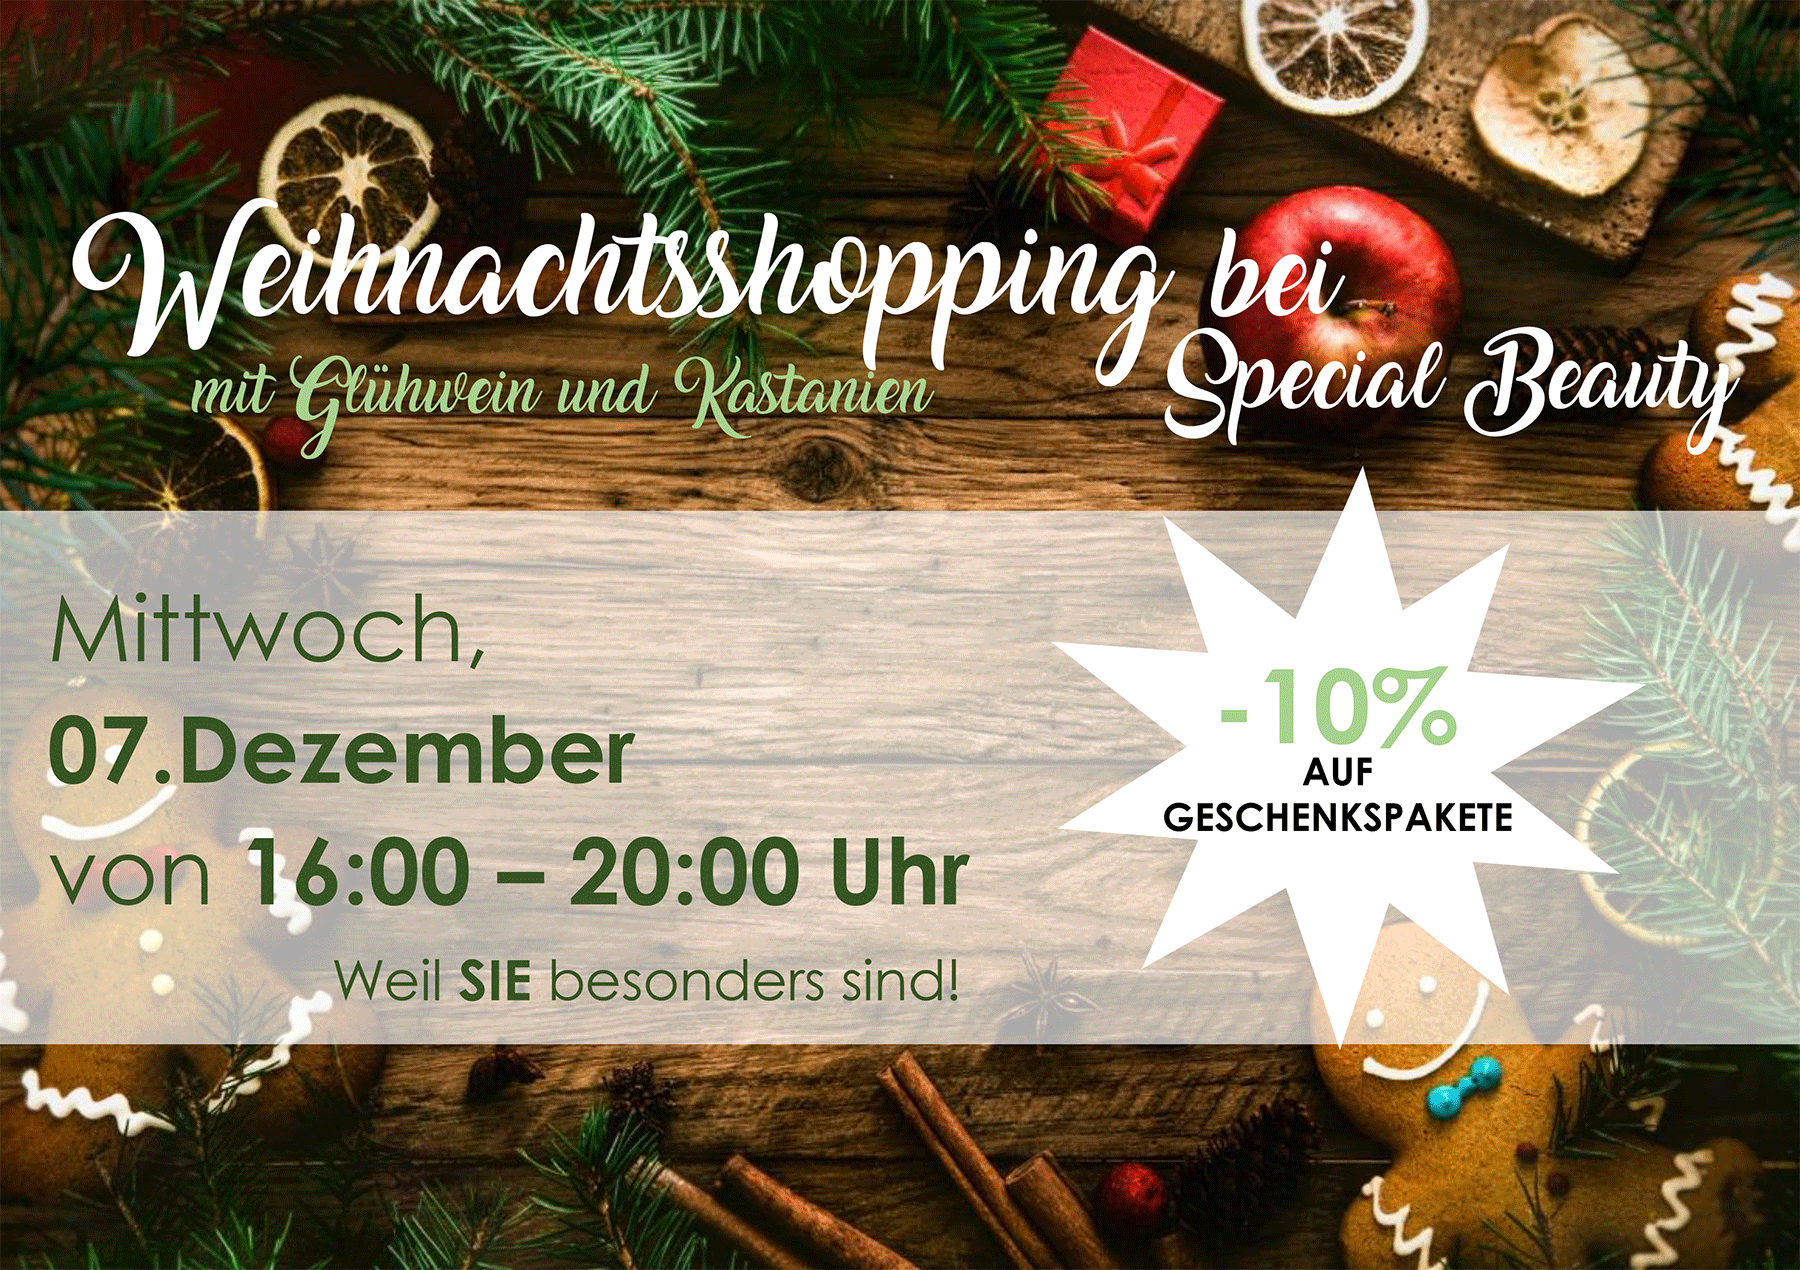 special-beauty-weihnachtsshopping